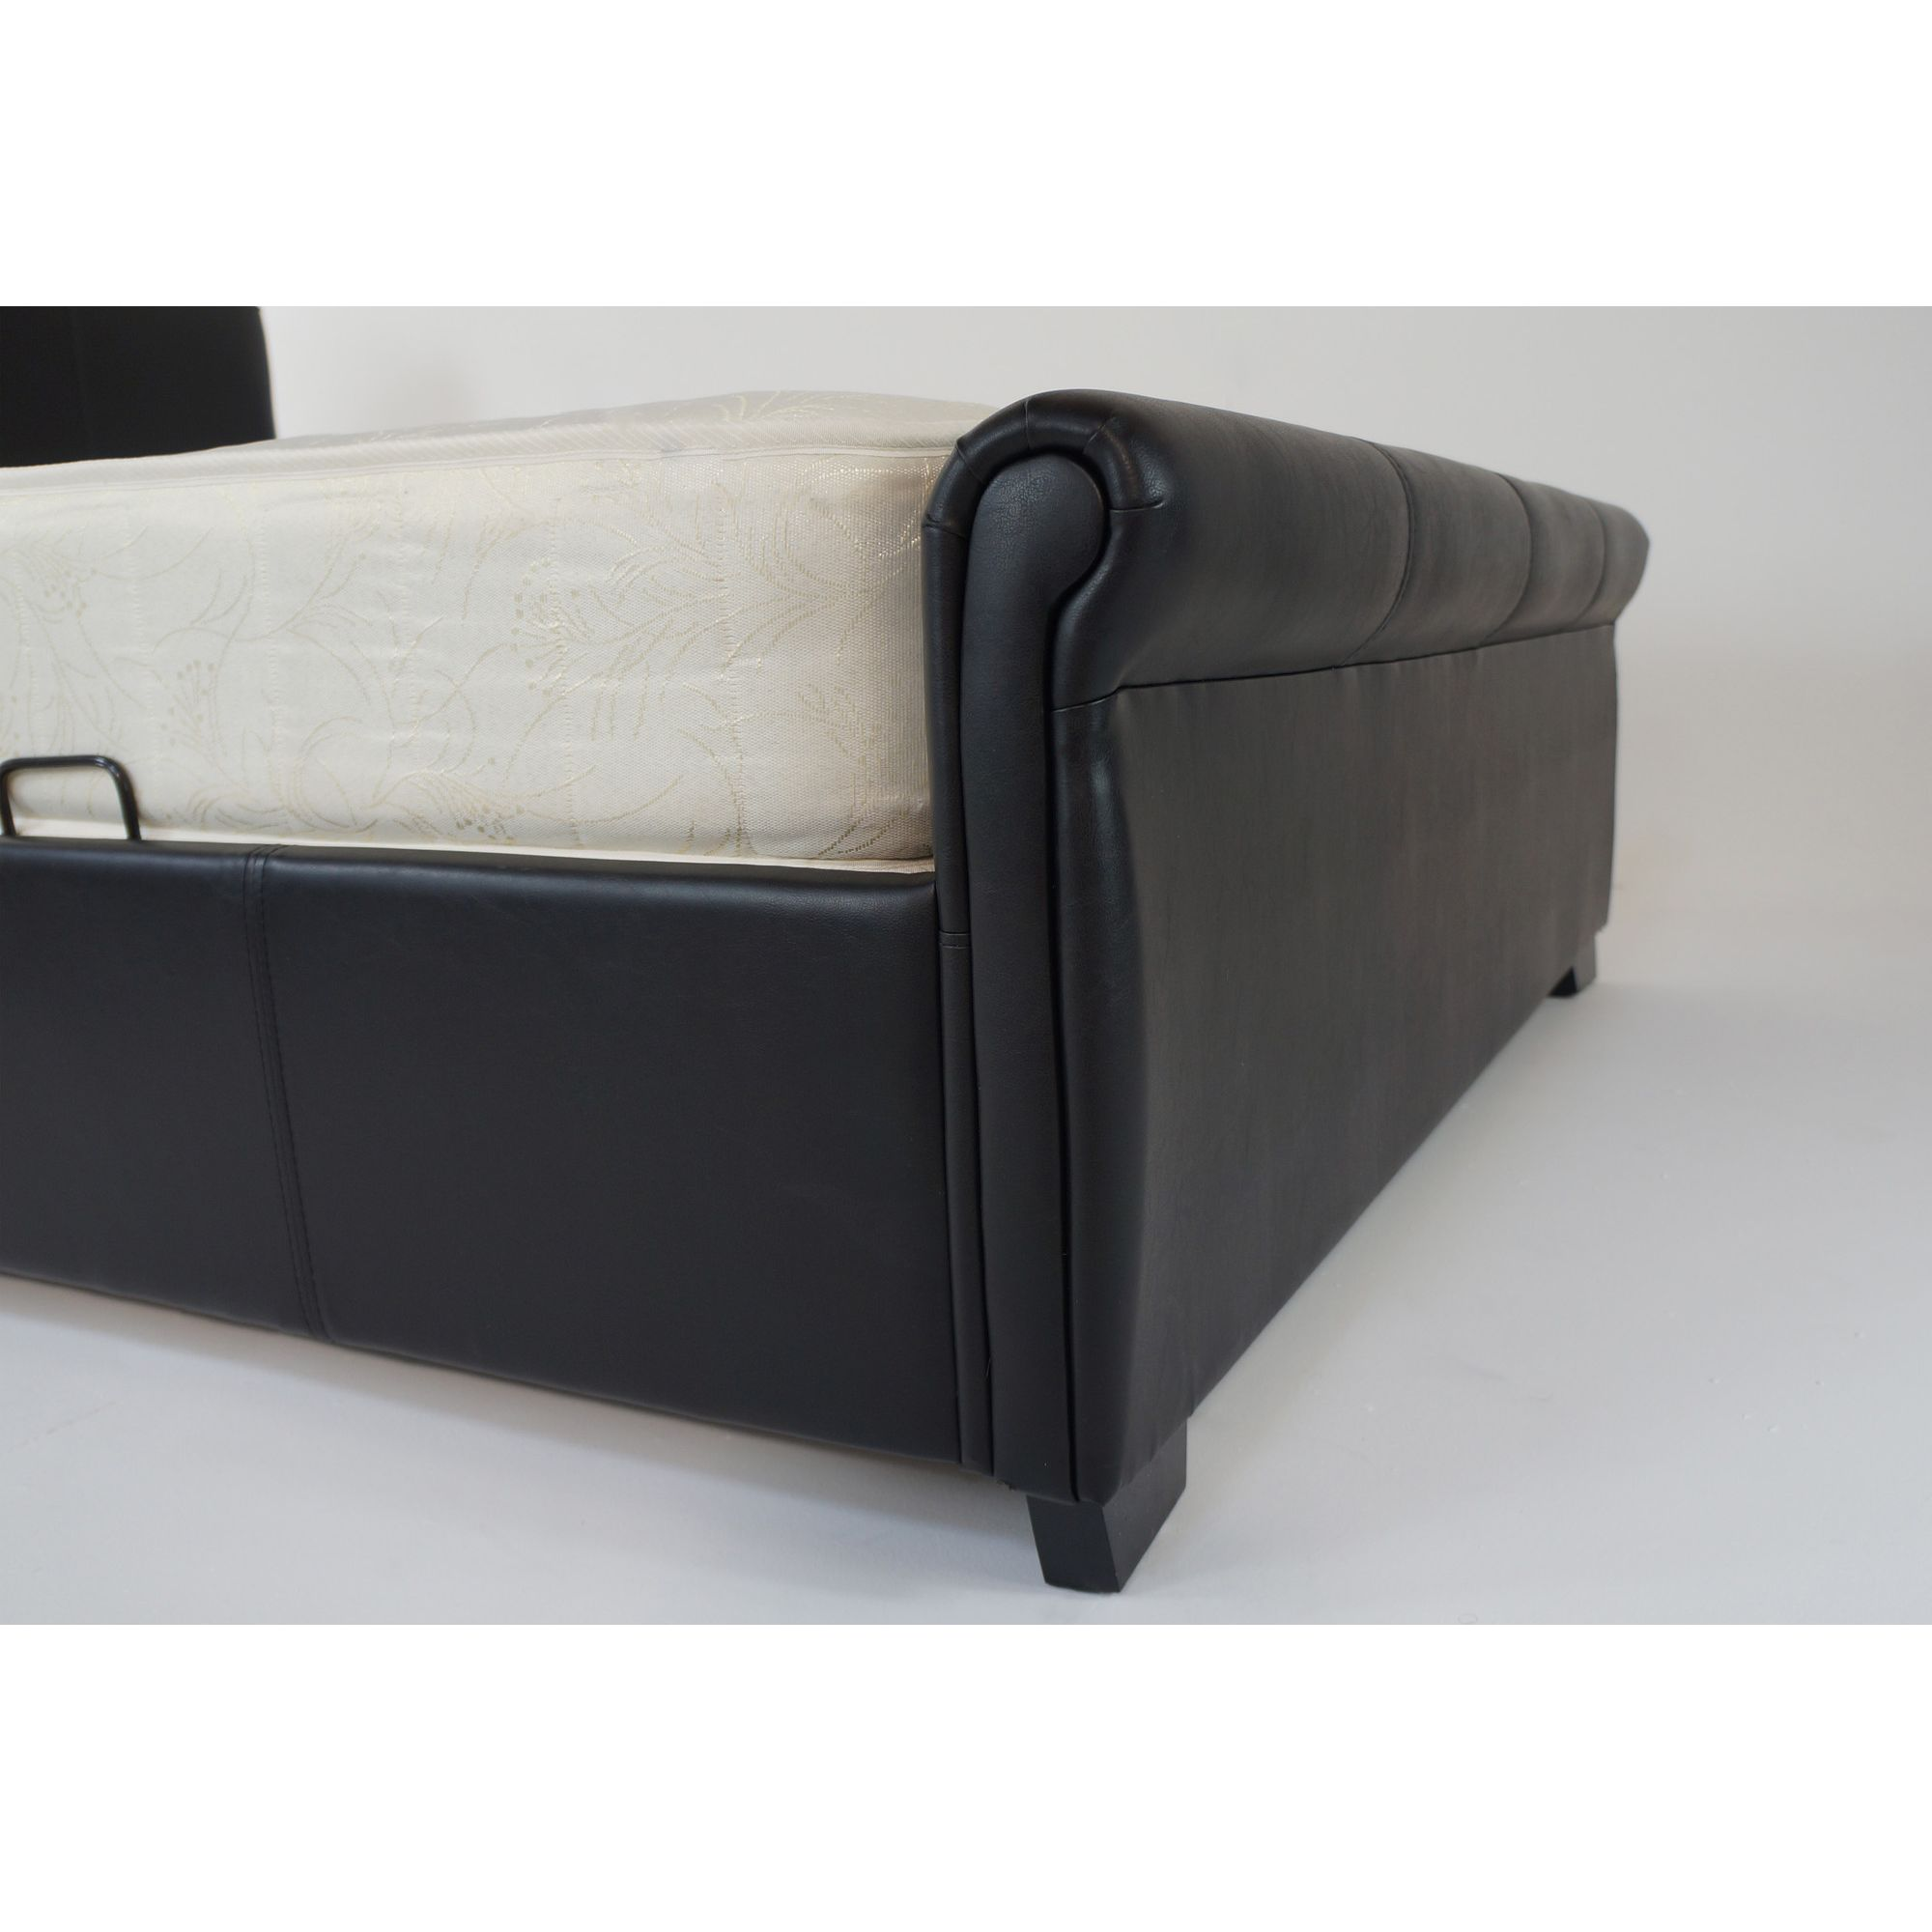 Alpha furniture Roma Real Leather Bed - Black - Double at Tesco Direct